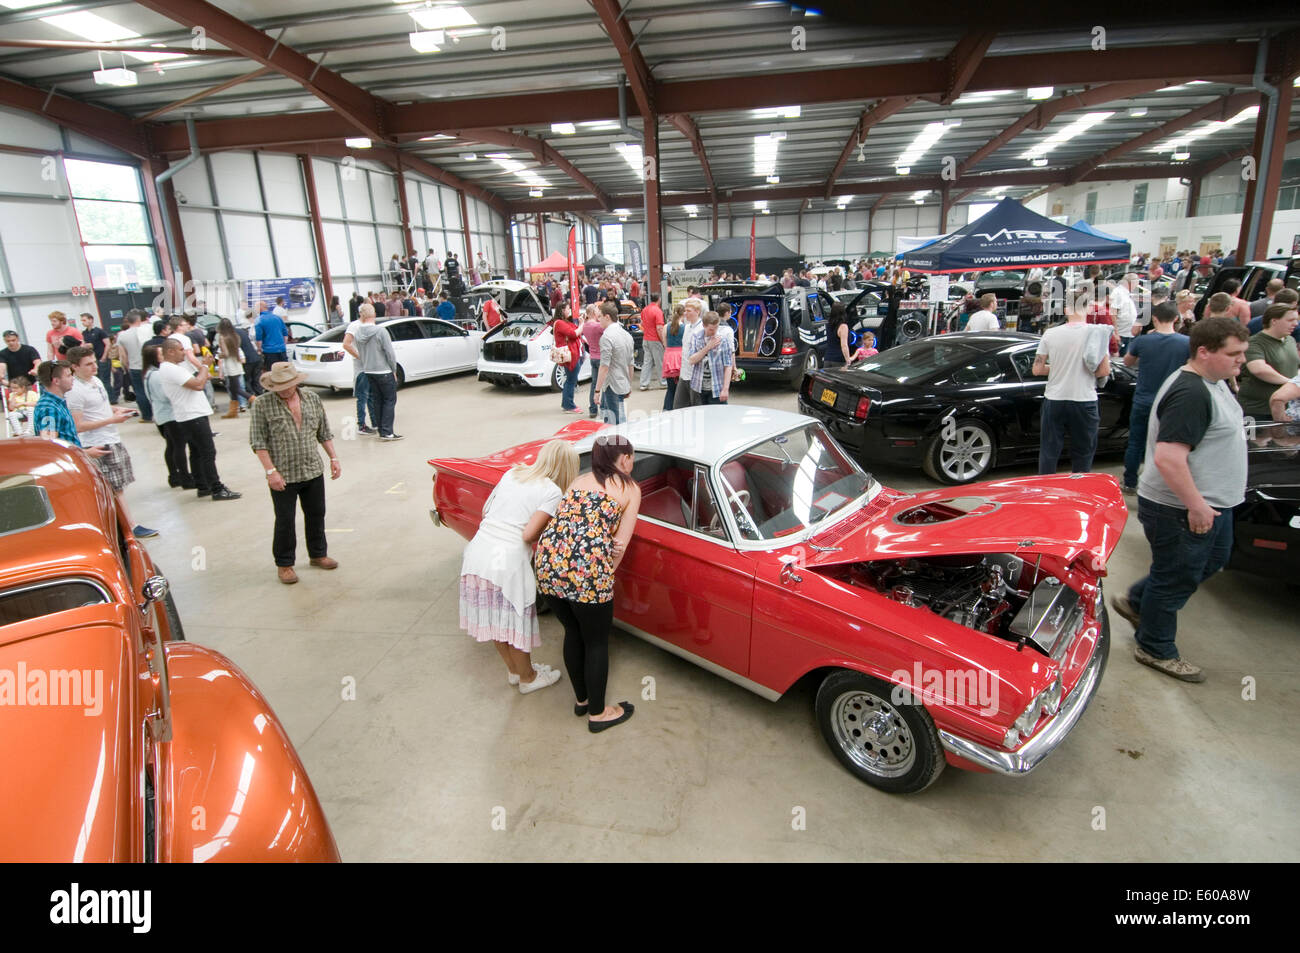 Indoor Car Show Stock Photos Indoor Car Show Stock Images Alamy - Indoor car show